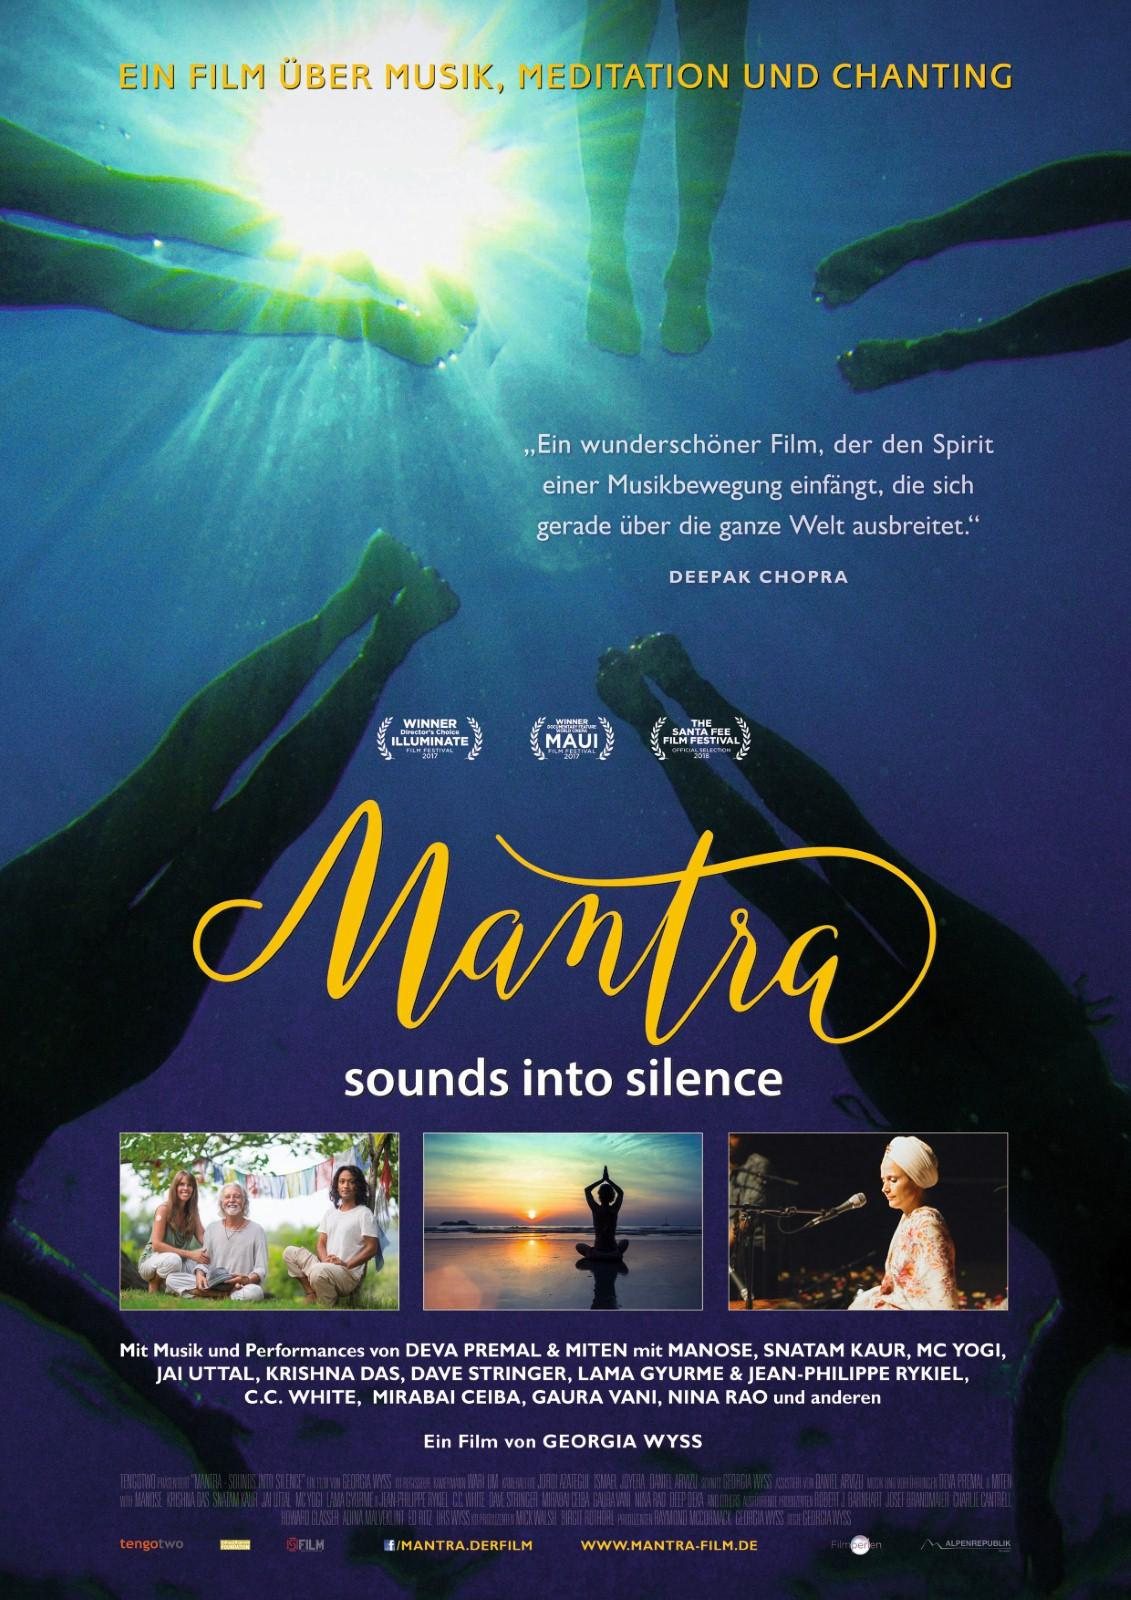 Mantra - Sounds into Silence (2018) film auf deutsch stream german online